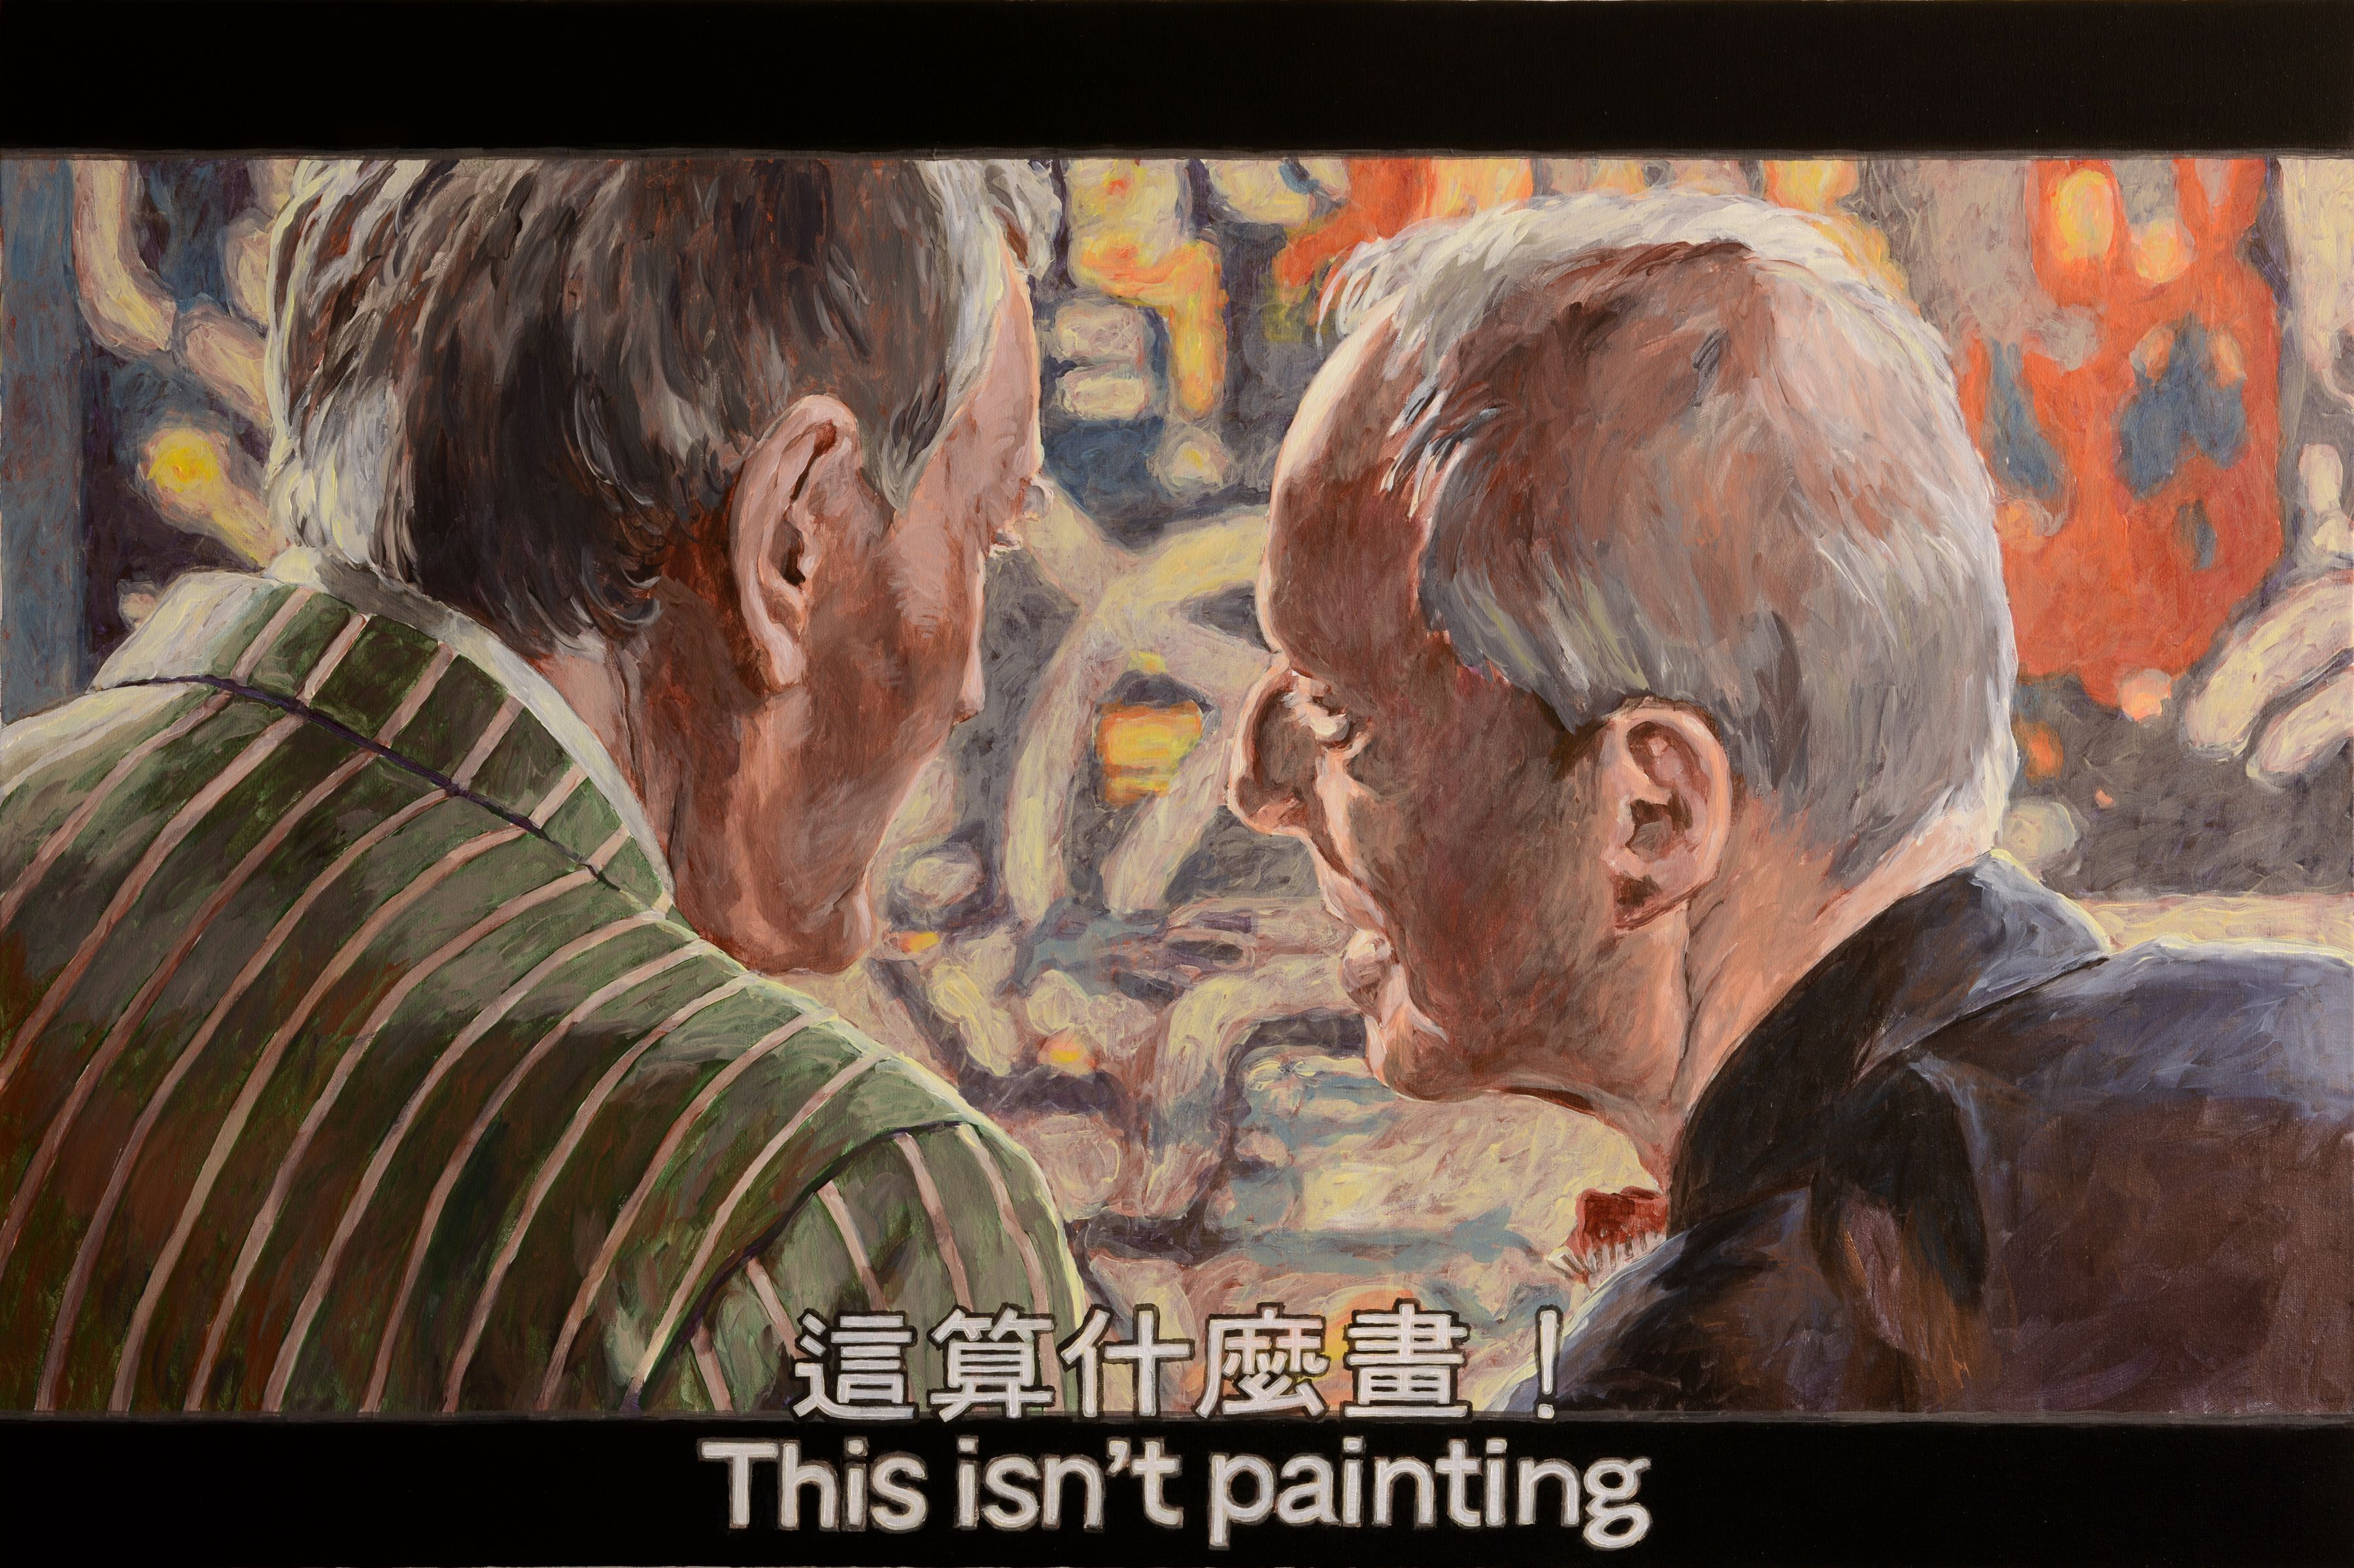 Pollock: This isn't painting